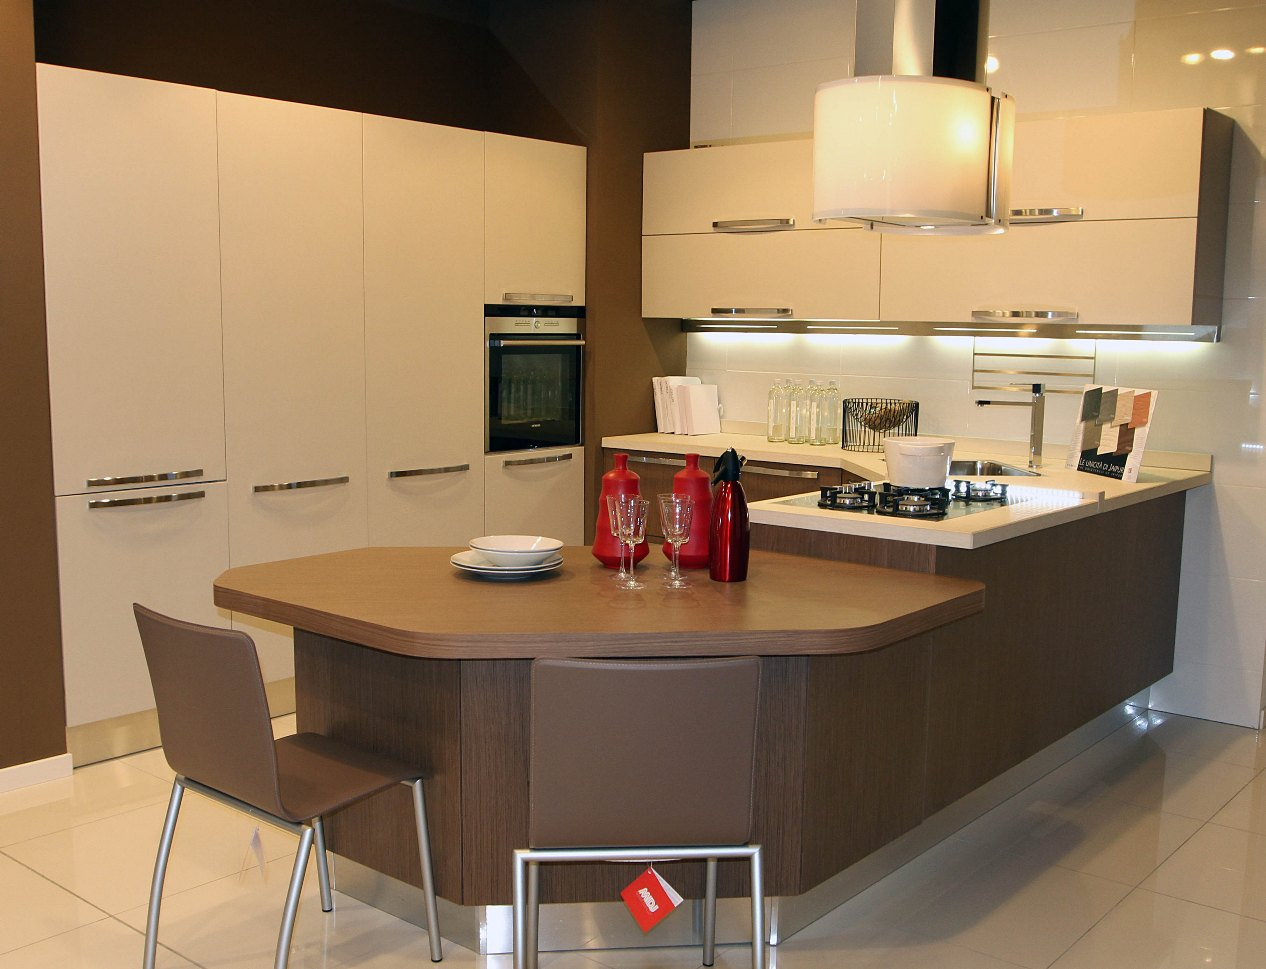 Outlet cucine veneto best outlet uac veneta cucina with outlet cucine veneto good outlet - Outlet cucine veneto ...